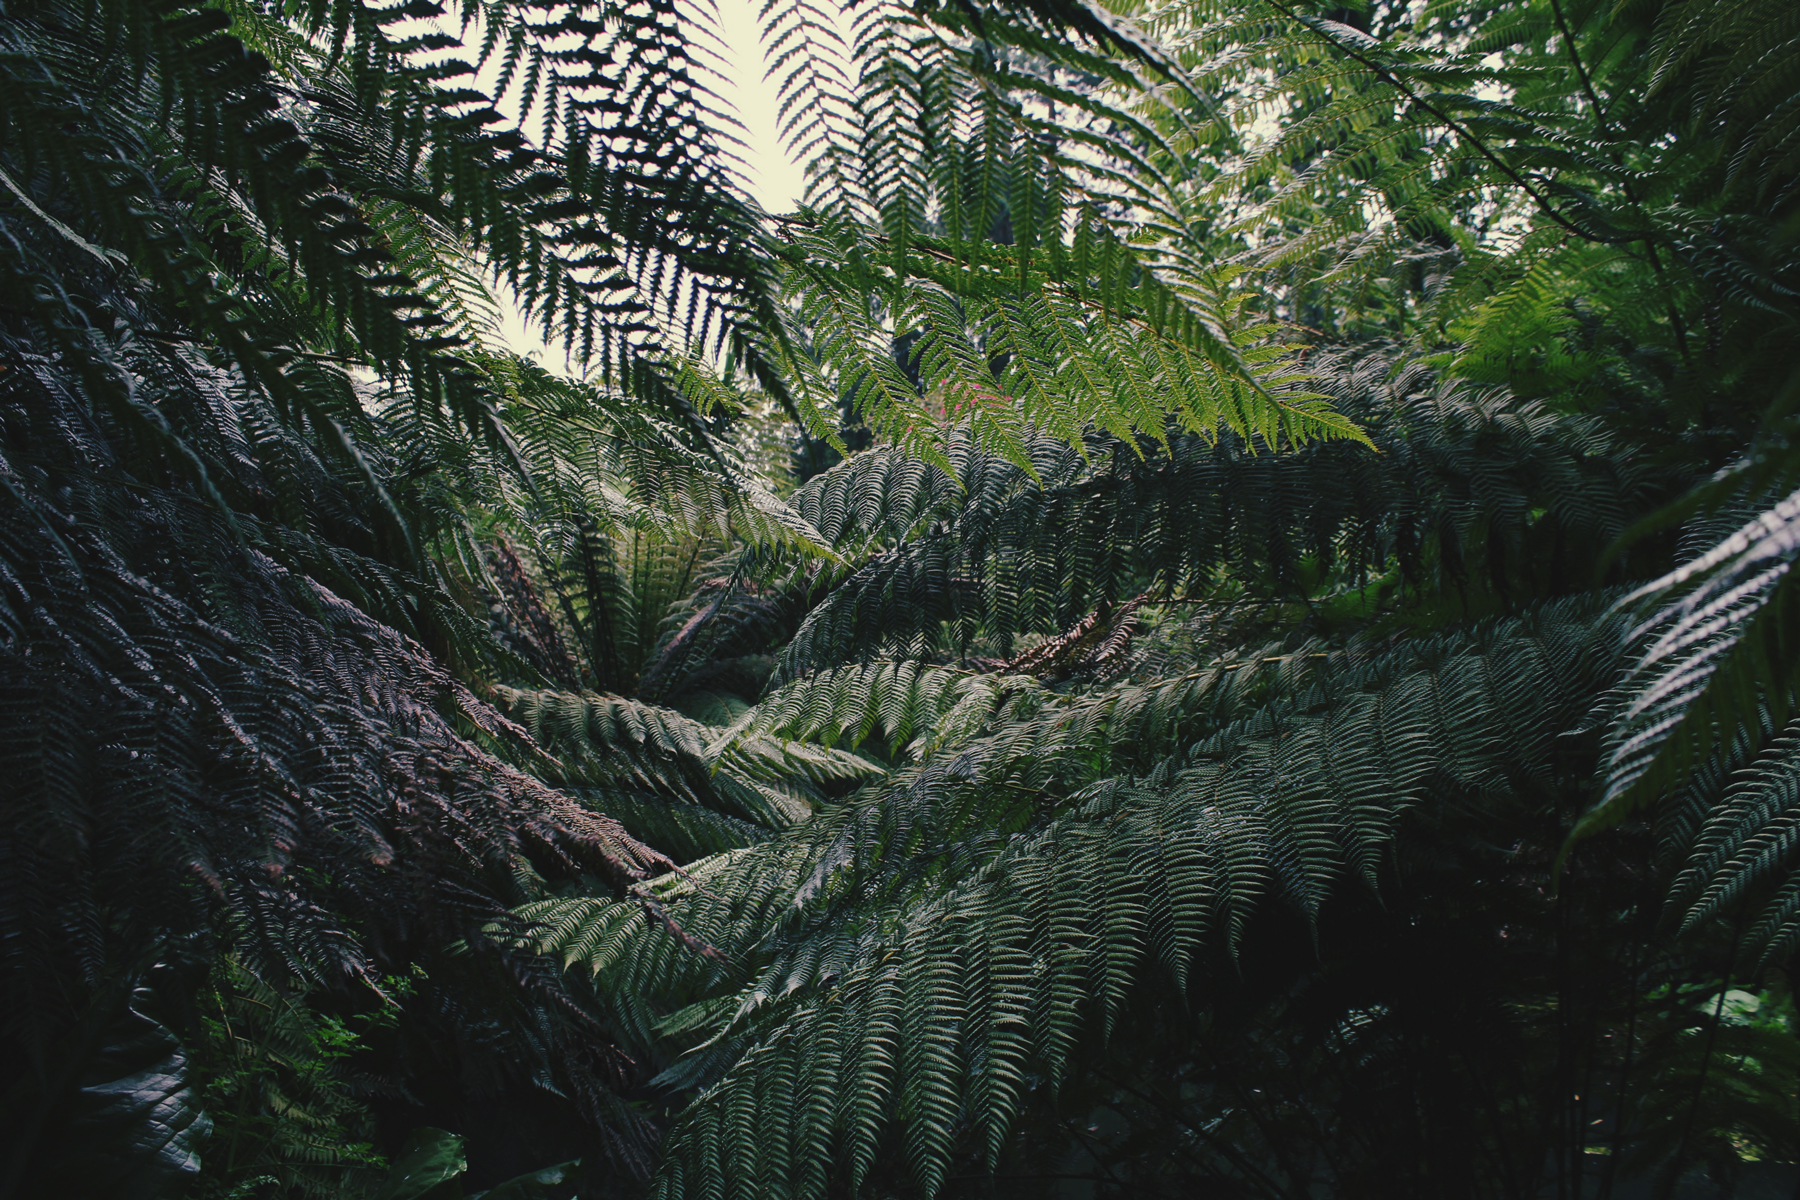 Fern Forest in the Lost Gardens of Heligan